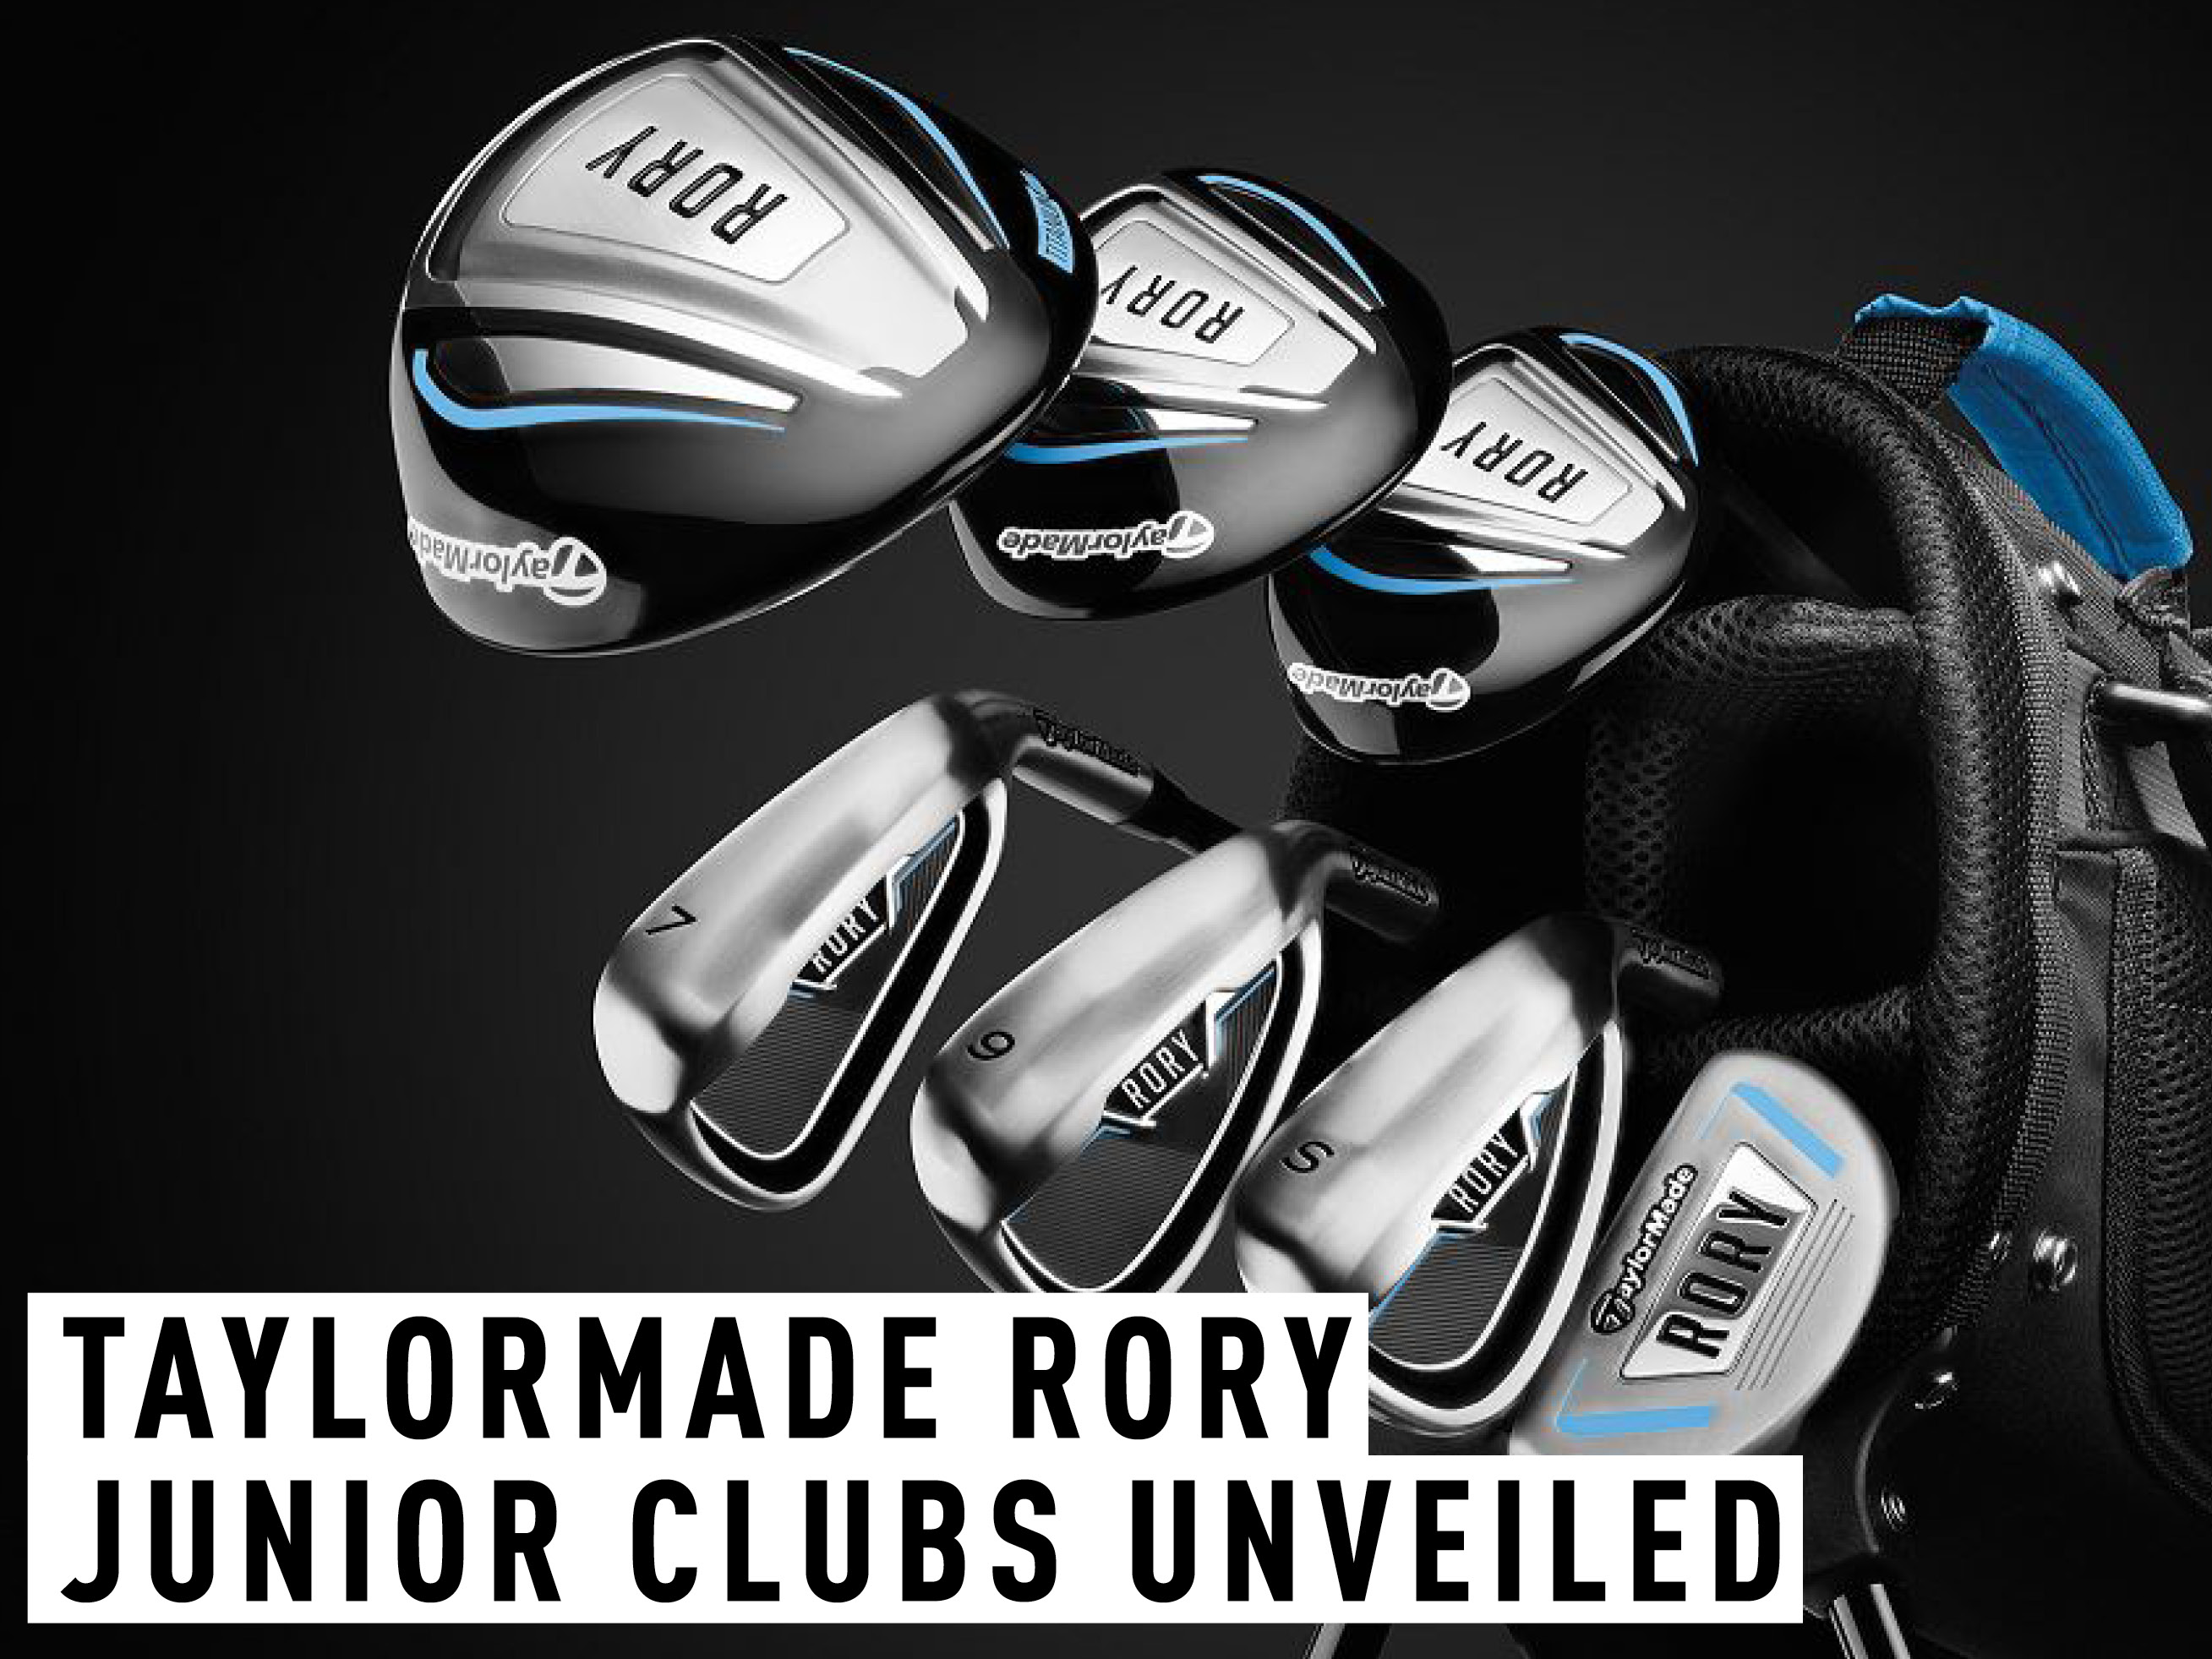 Taylormade Rory